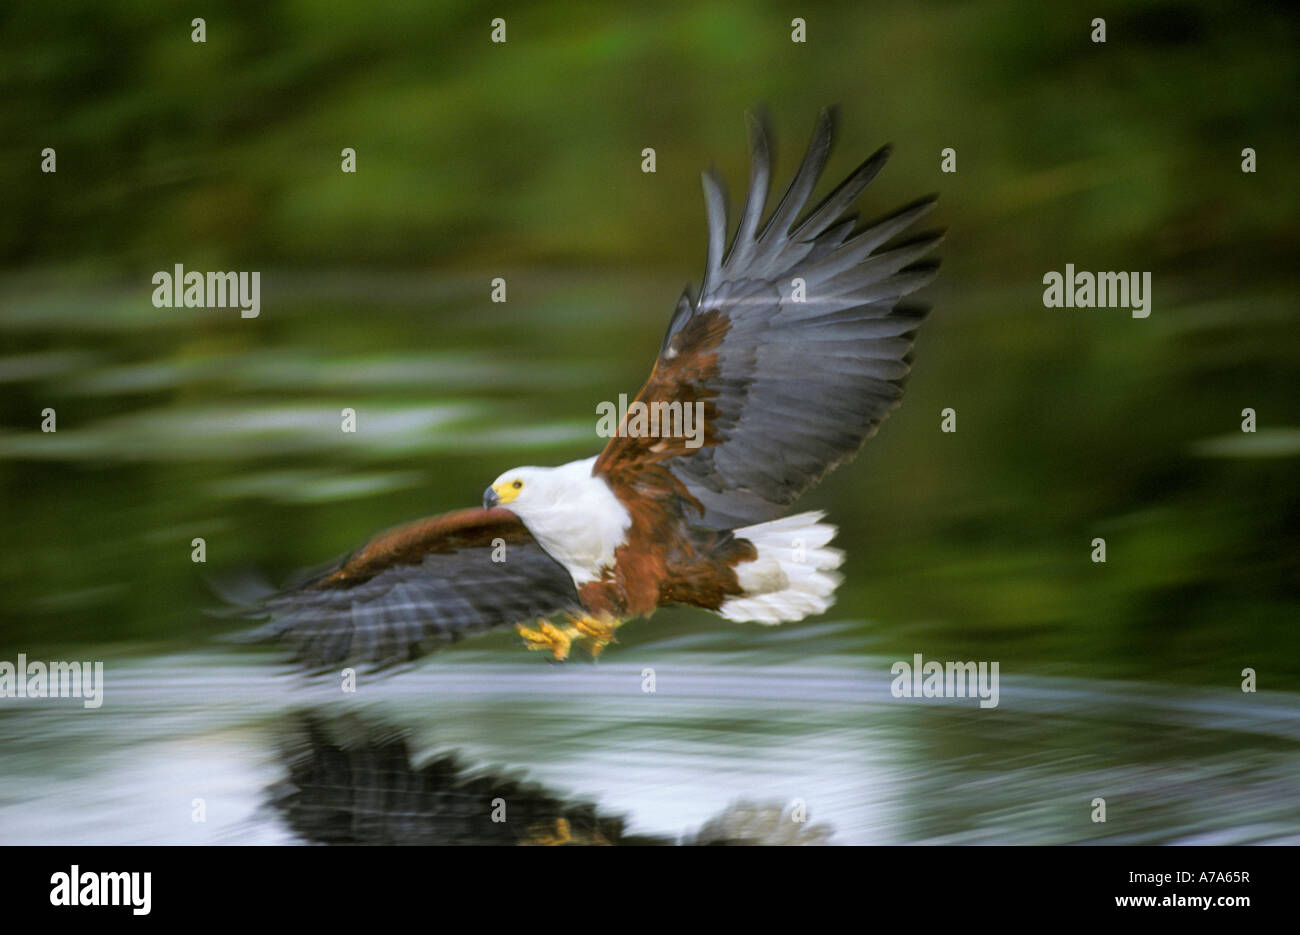 African fish eagle in flight stooping with talons extended Jedibe Okavango Delta Botswana - Stock Image